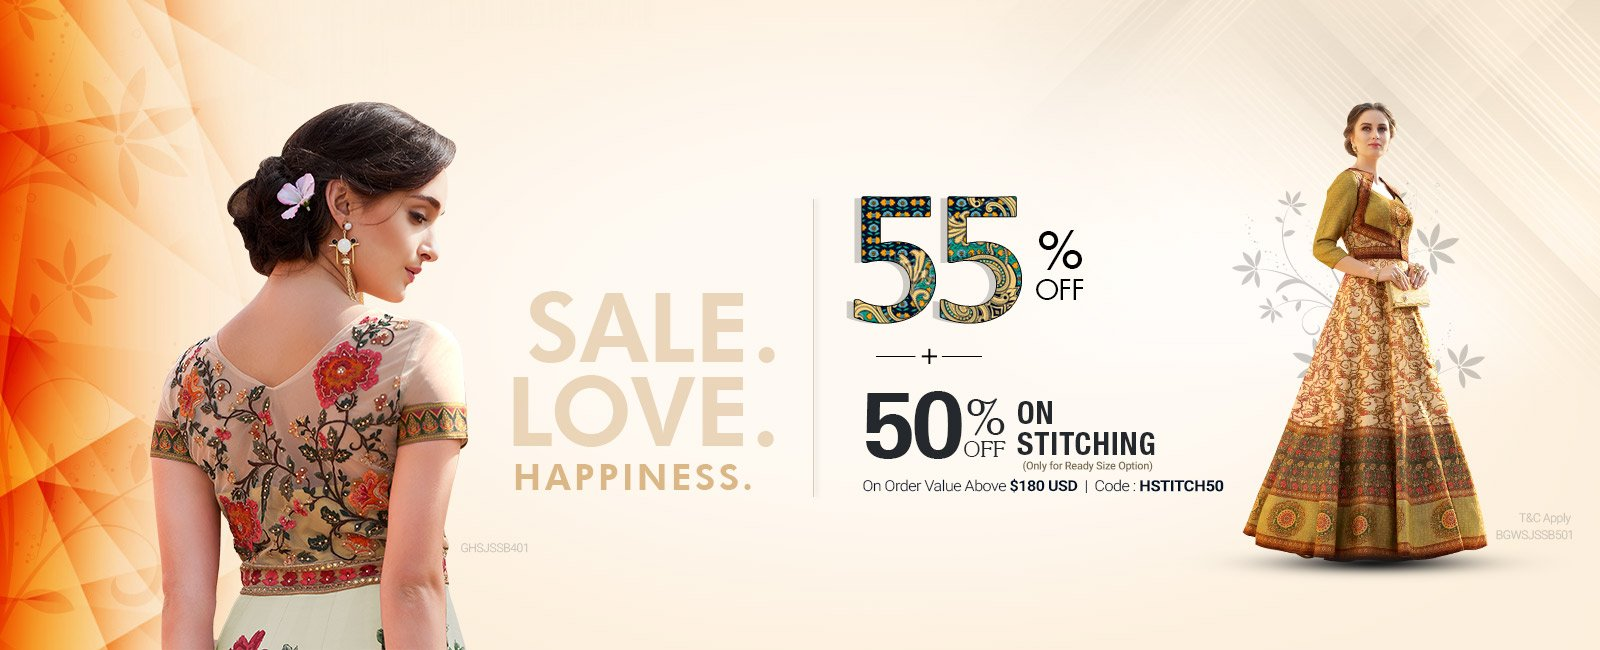 55% Off + Extra 10 %+50% Off on Stitching